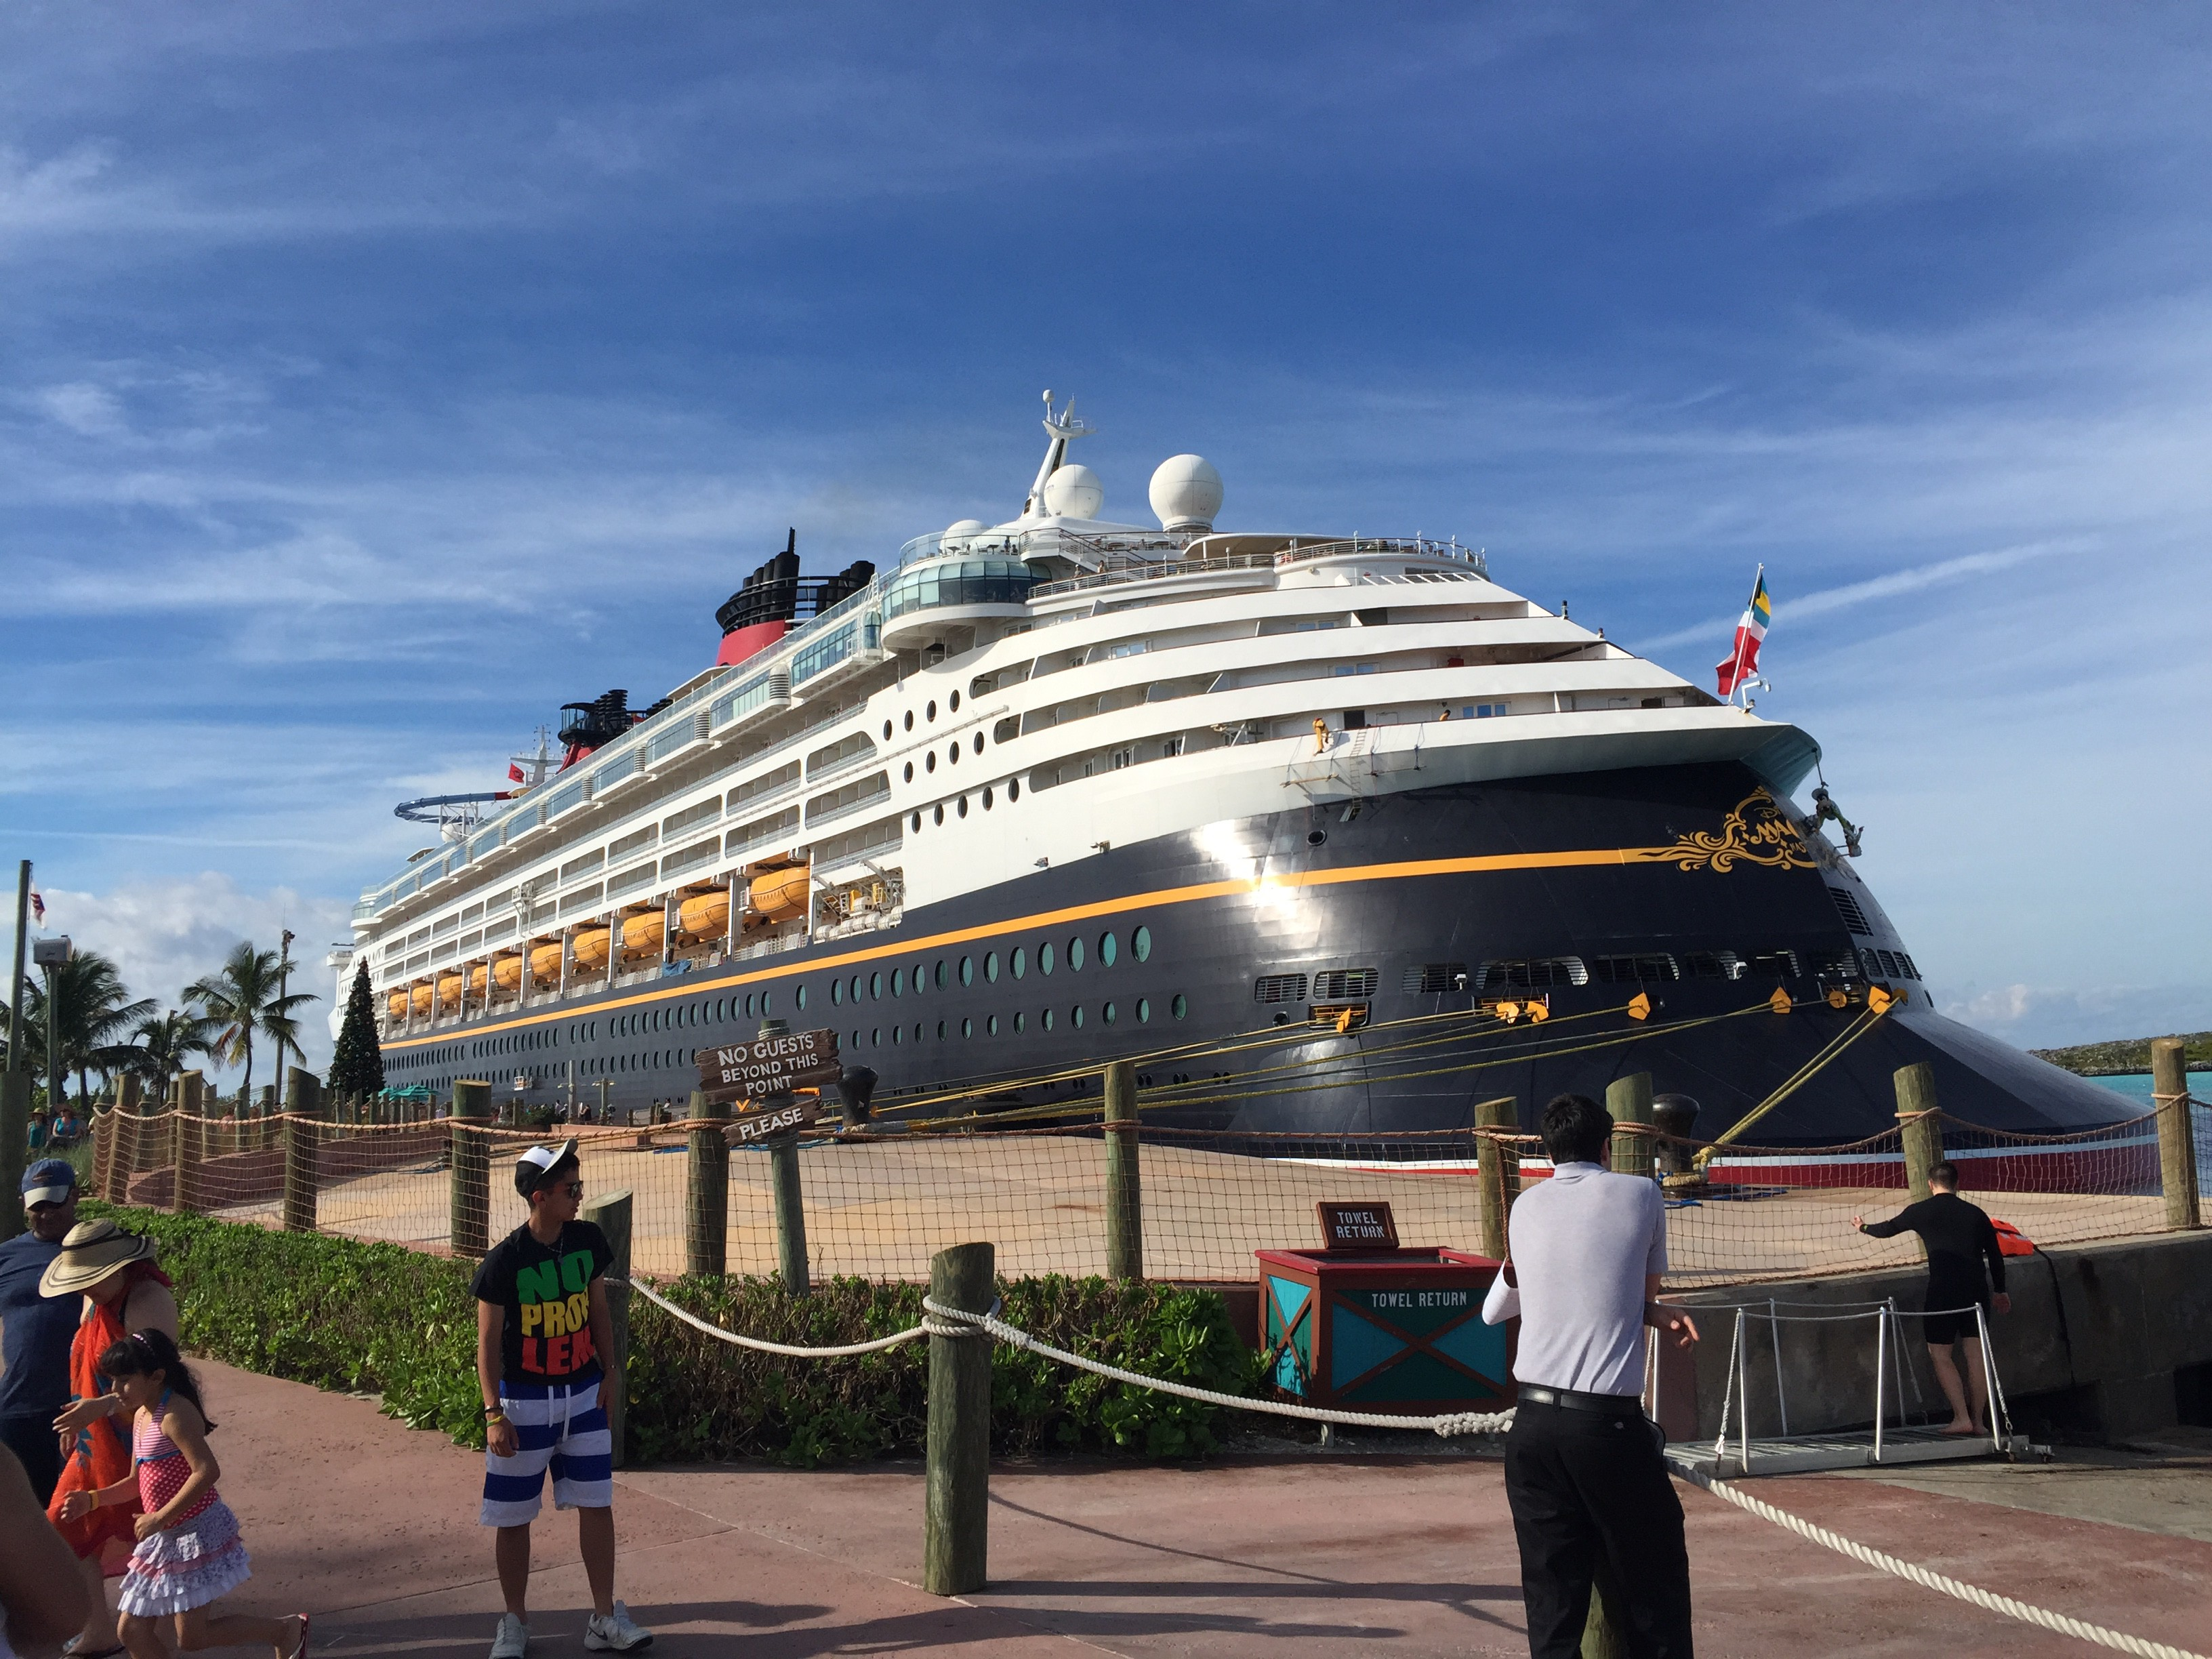 I've booked my dream Disney Cruise…now what??